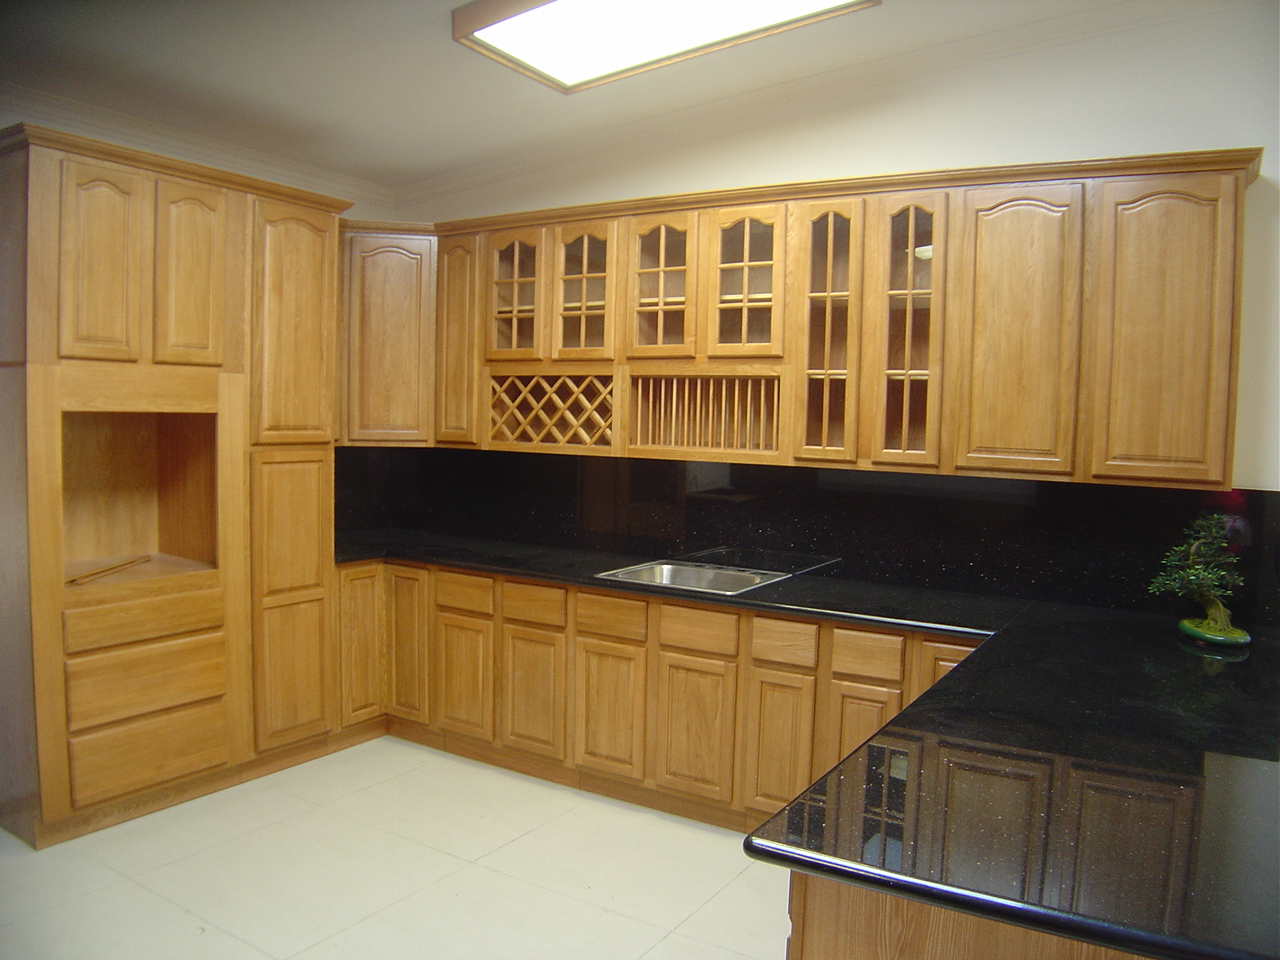 Oak kitchen cabinets for your interior kitchen minimalist for Kitchen interior ideas